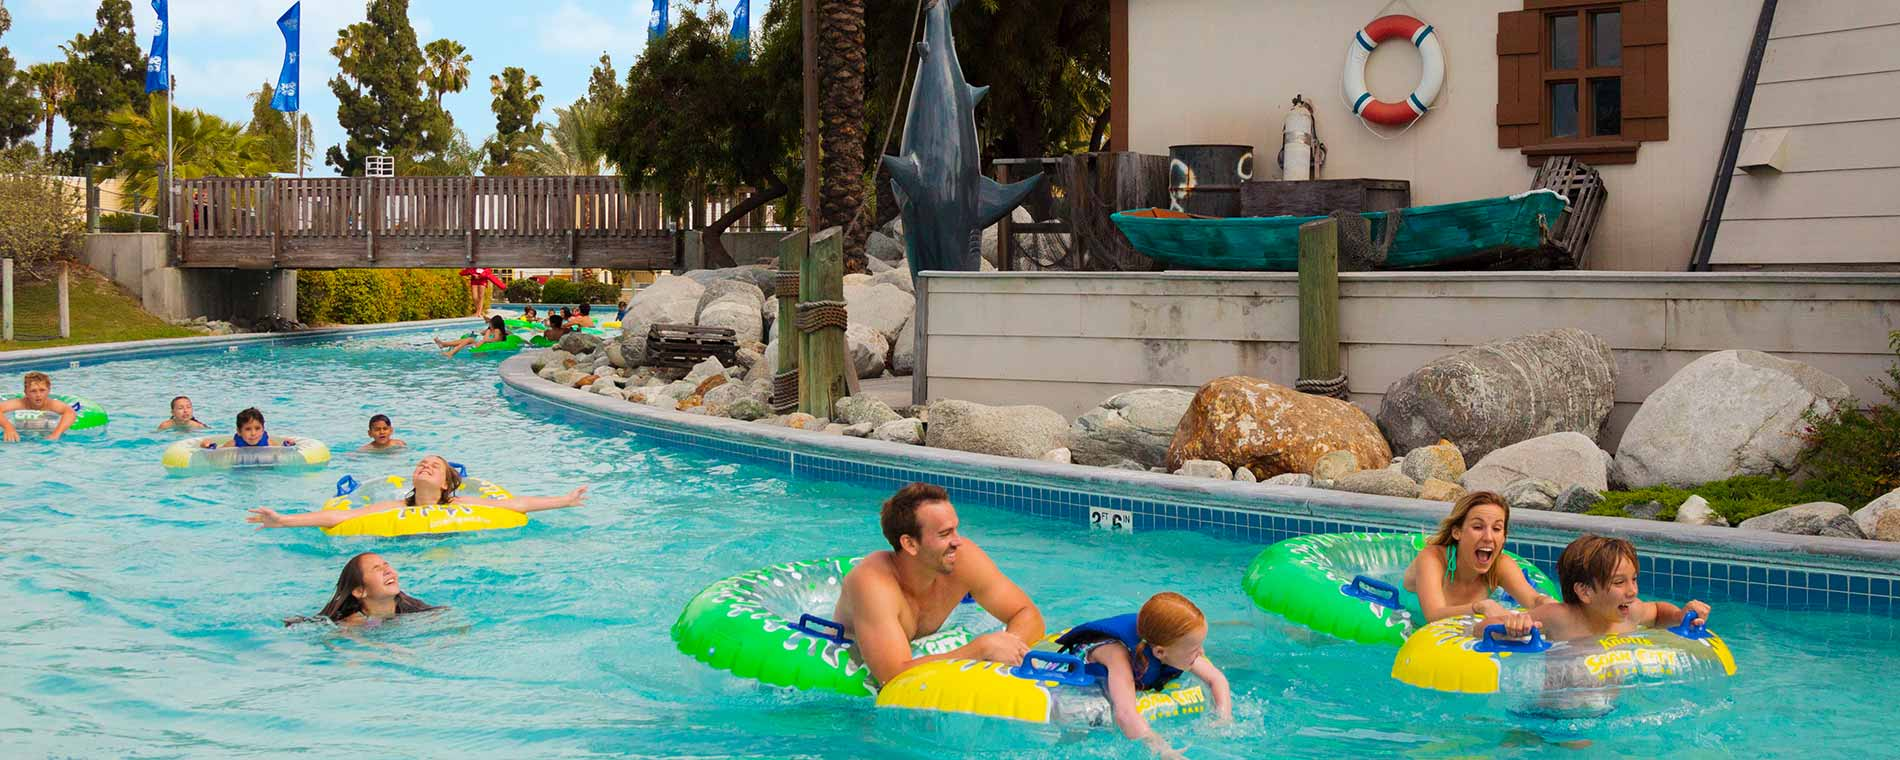 Extreme Water Slides & Attractions at Knott's Soak City